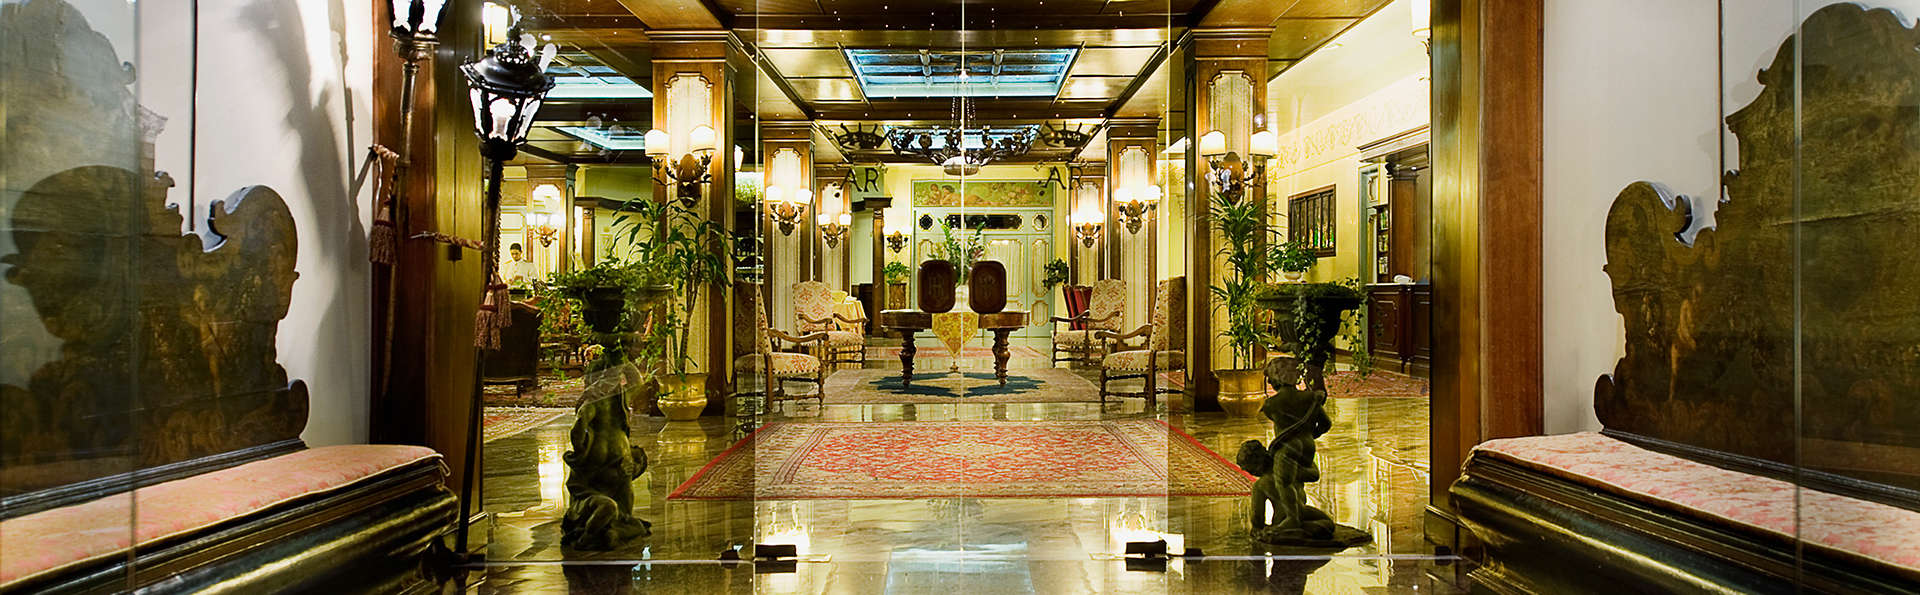 Hotel Abano Ritz Terme - EDIT_NEW_Hall2.jpg